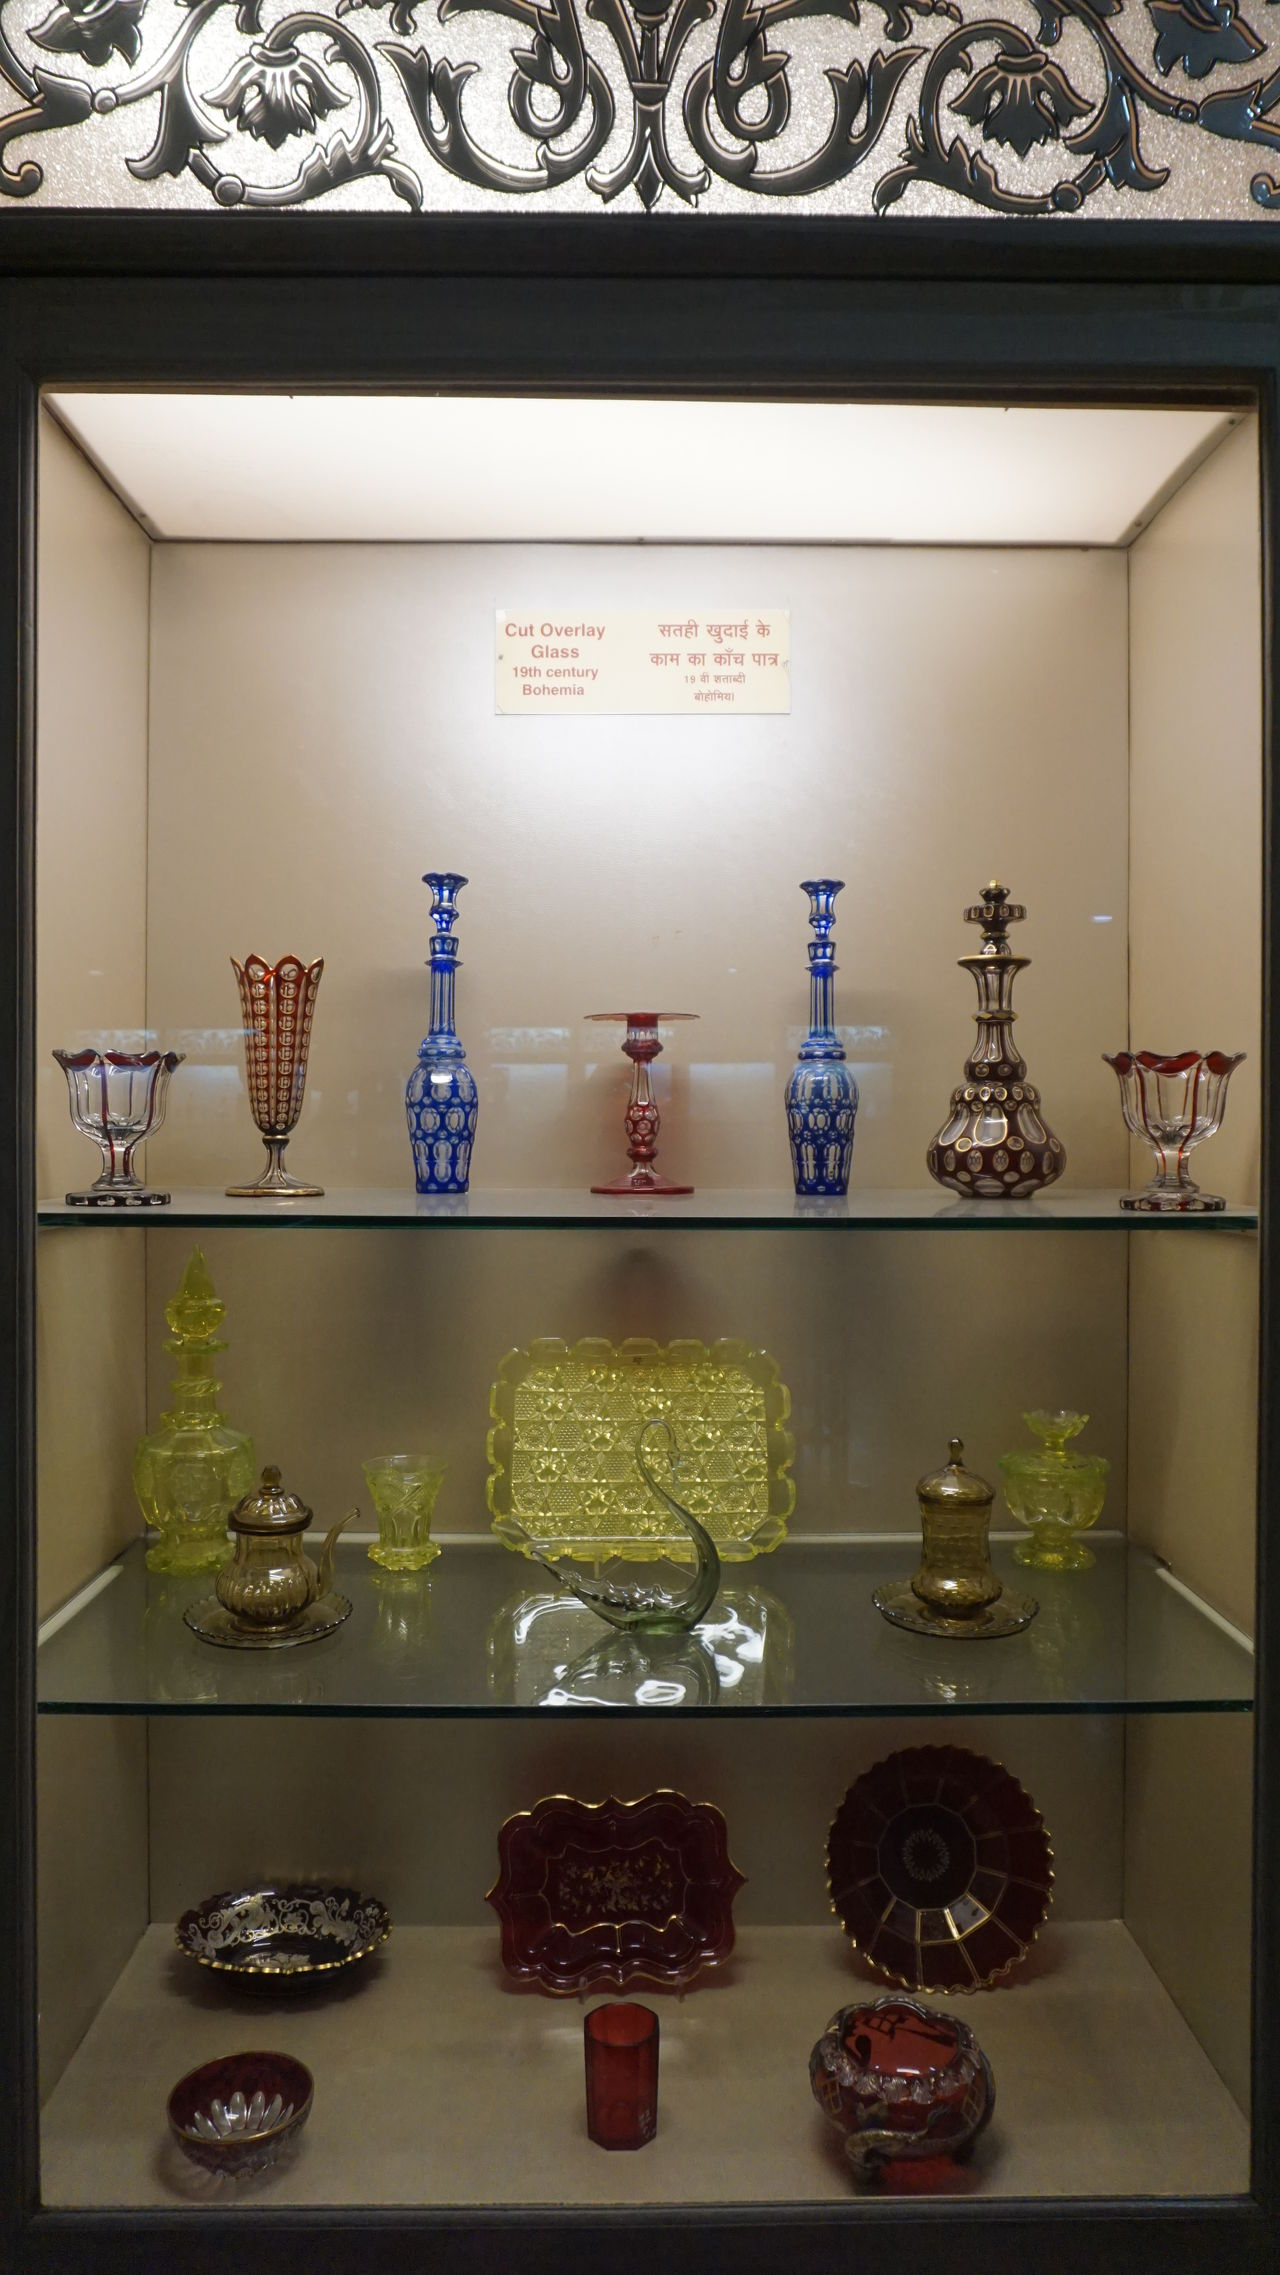 Cut Overlay Glass 🍷 Collection of Bohemia, 19th century Gold Colored No People Indoors  Exhibition Architecture Day Glass 🍷 Glasses Glass Glass - Material Glass_collection Glassware Colorful Glass Multicolored SonyAlpha6000 Sony A6000 Nwin Photography Bohemia Bohemian Style 19th Century Style Cut Overlay Glass Salarjungmuseum Hyderabad,India